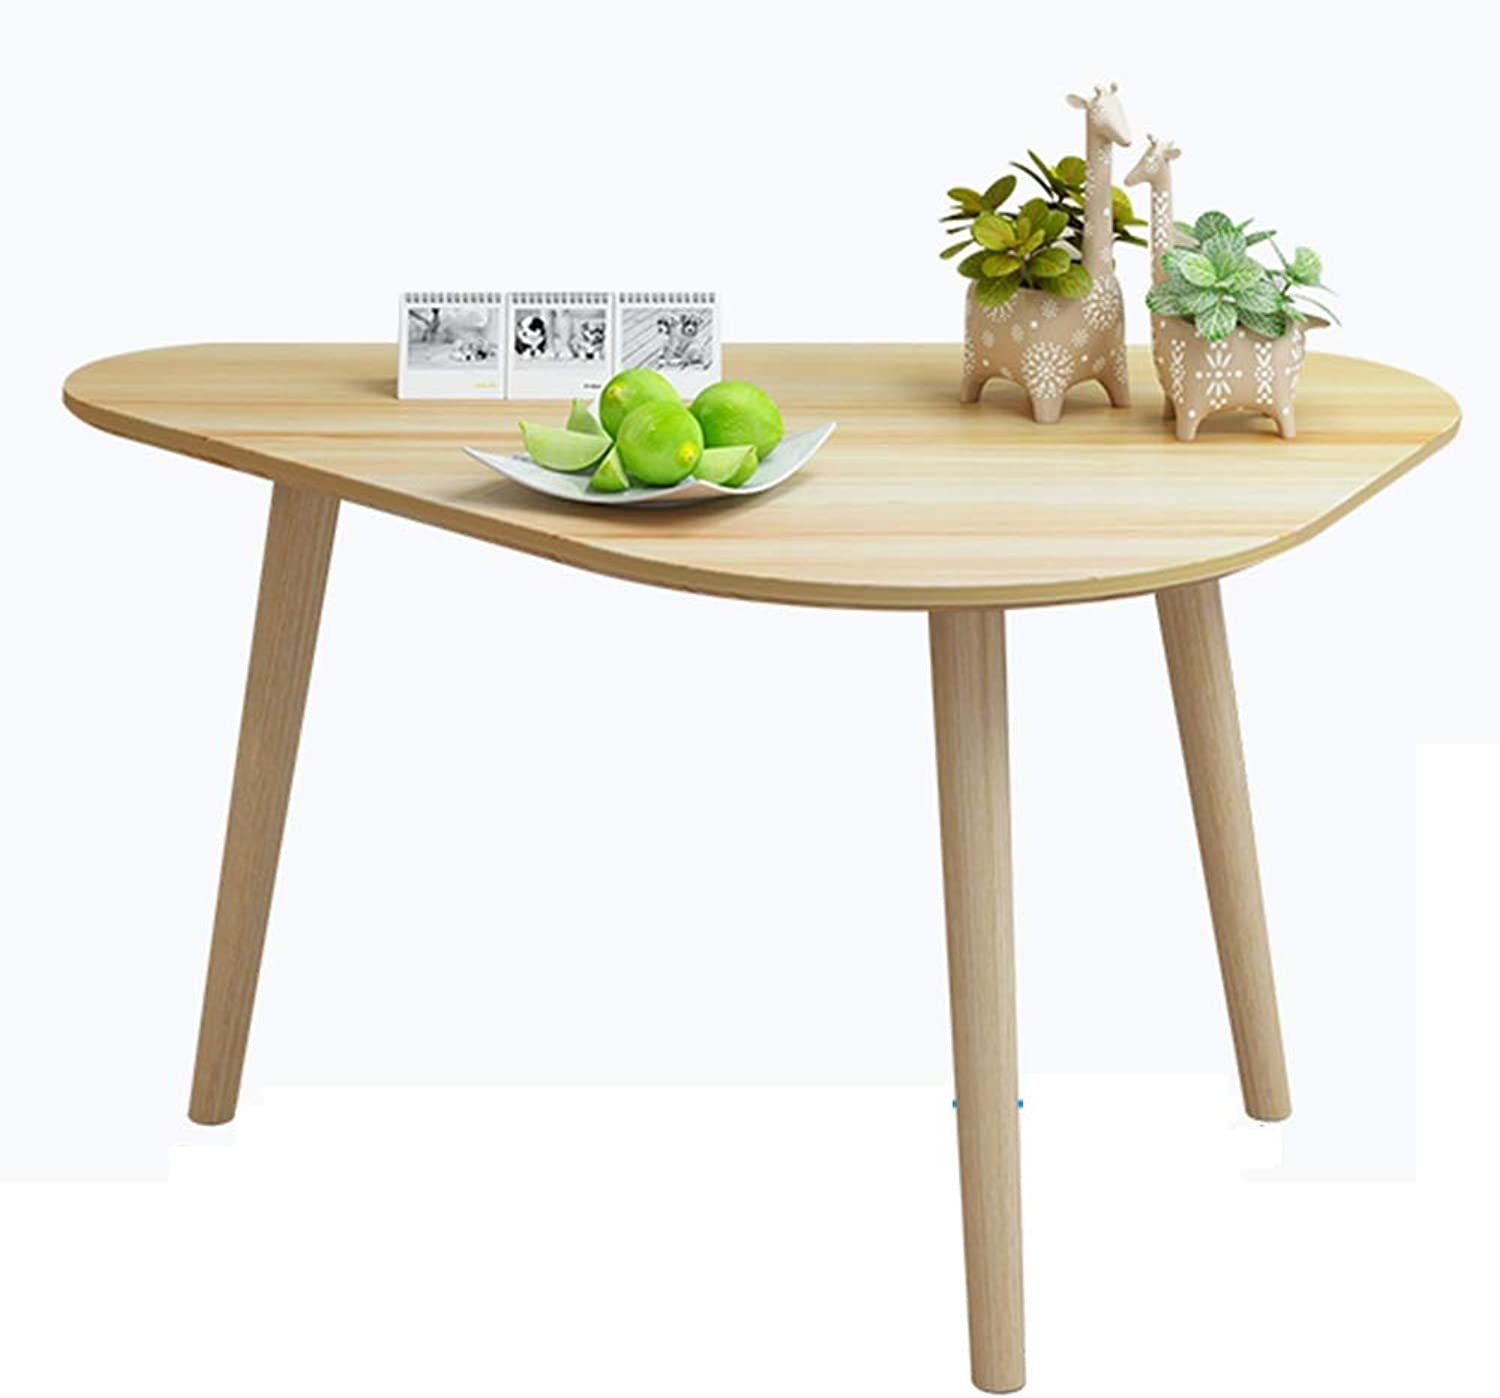 NAN Modern Nest Tables White Gloss Wood Coffee Table Sofa Side End Table Living Room table Folding Tables